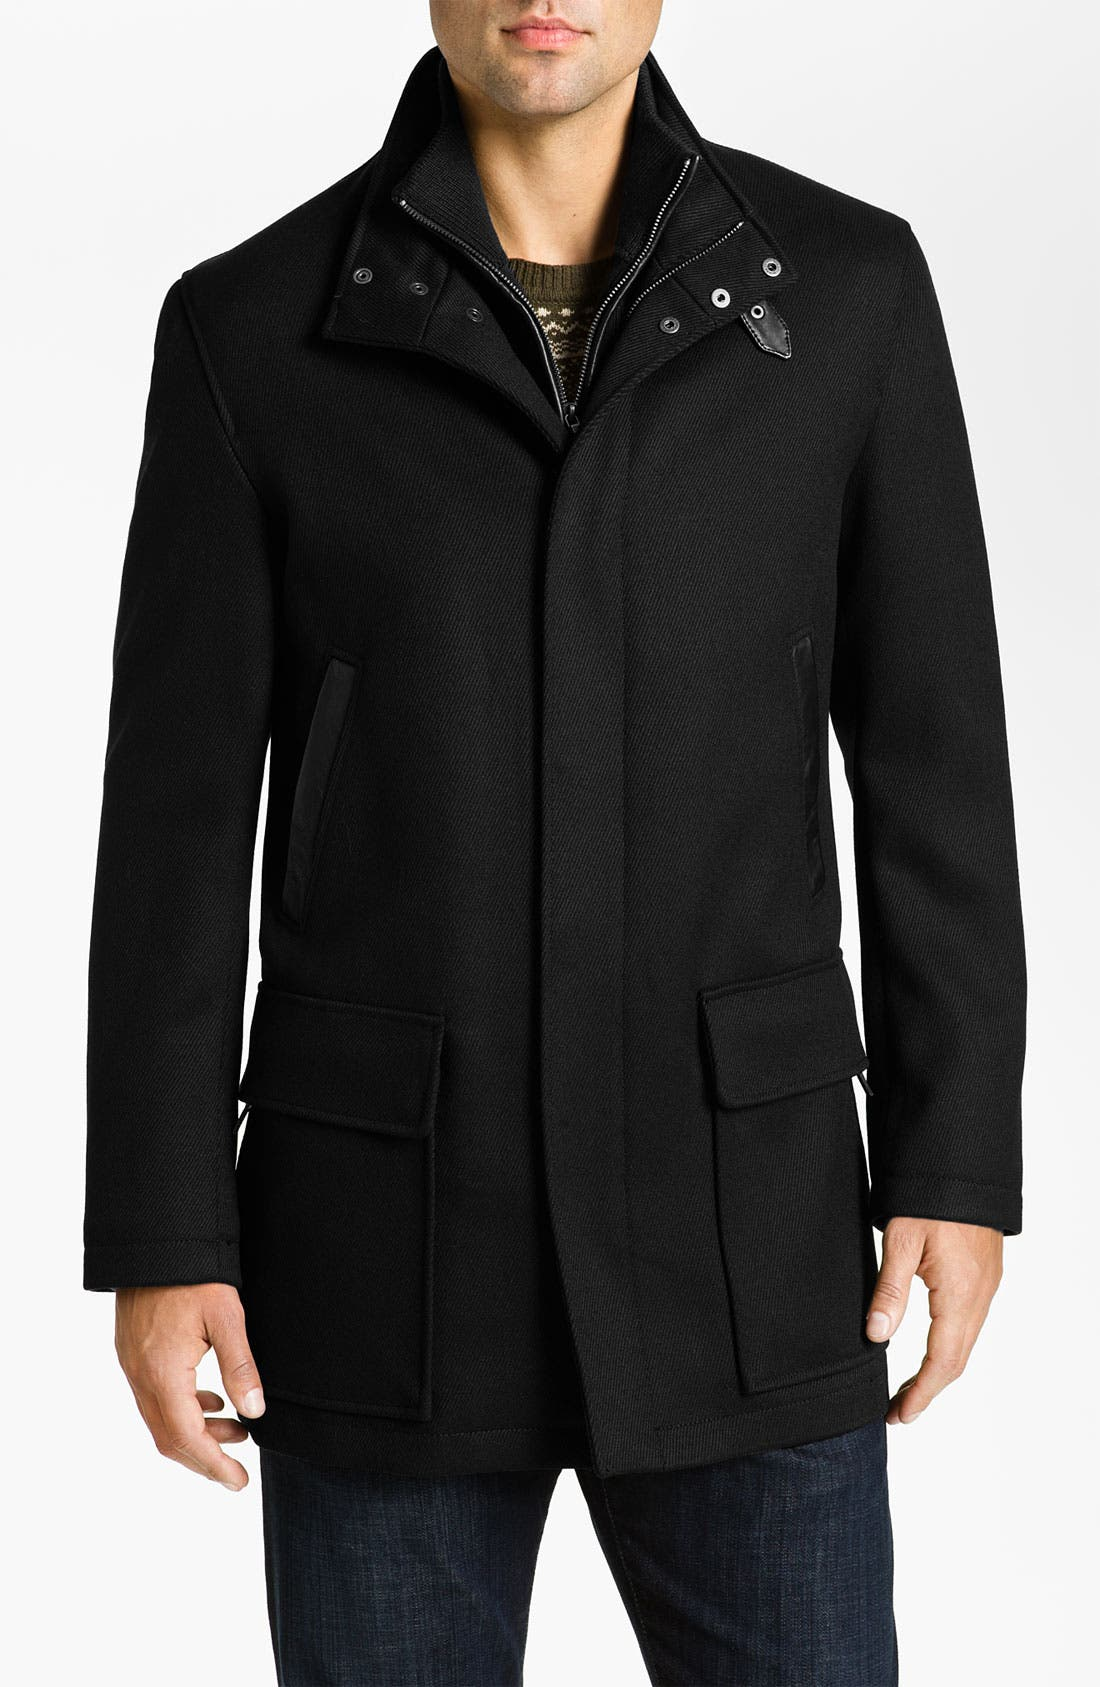 Alternate Image 1 Selected - Cole Haan Leather Trim Wool Twill Car Coat (Online Exclusive)